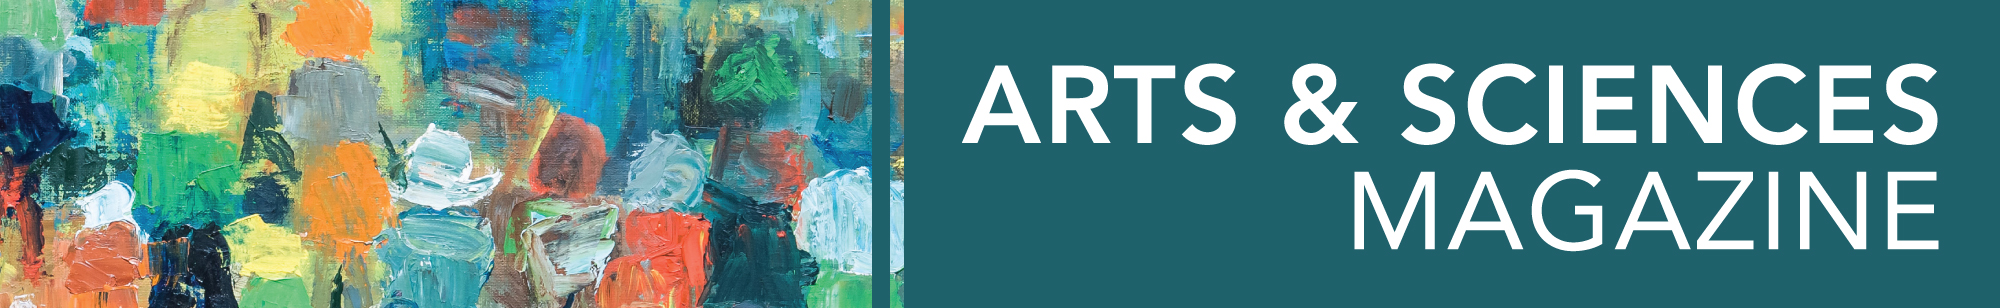 Arts and Sciences Magazine (banner).